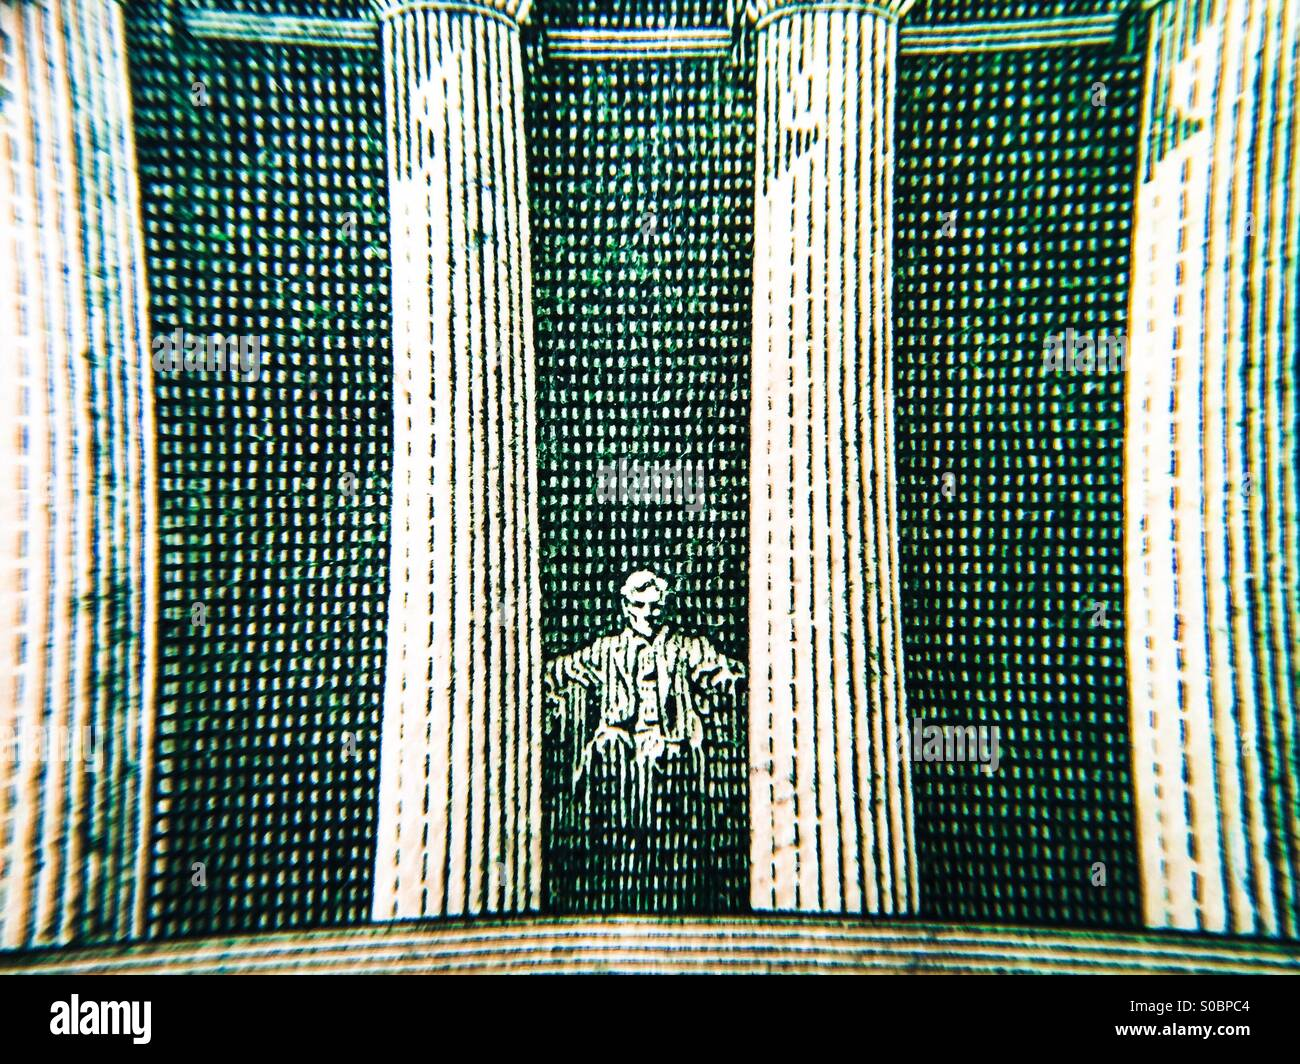 Macro View Of The Lincoln Memorial On The Back Of A Five Dollar Bill